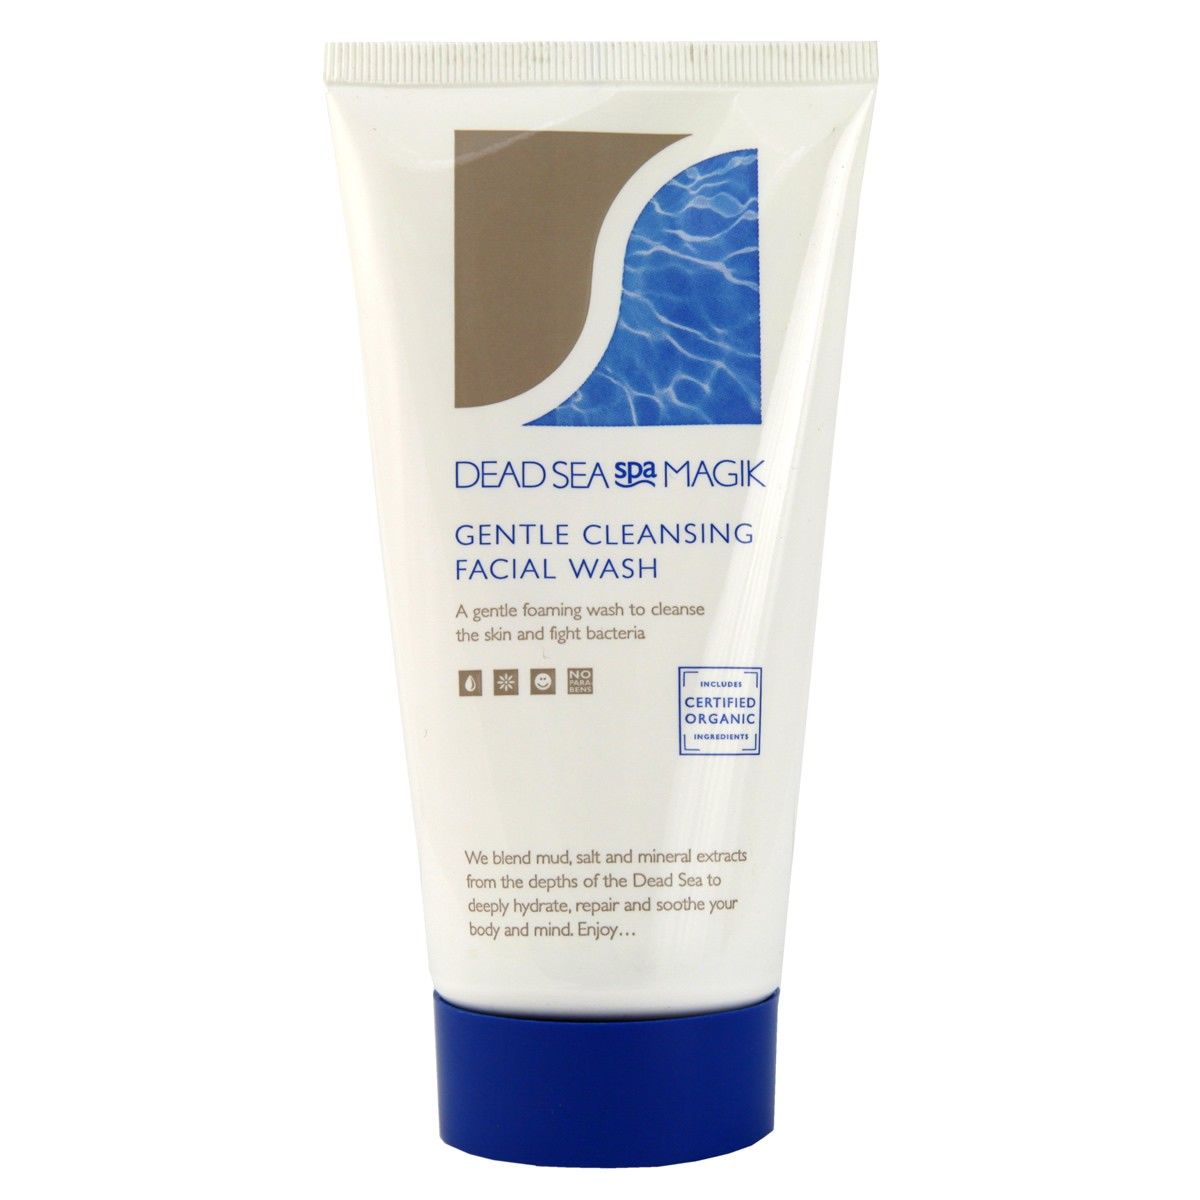 Dead Sea Spa Magik Gentle Cleansing Facial Wash